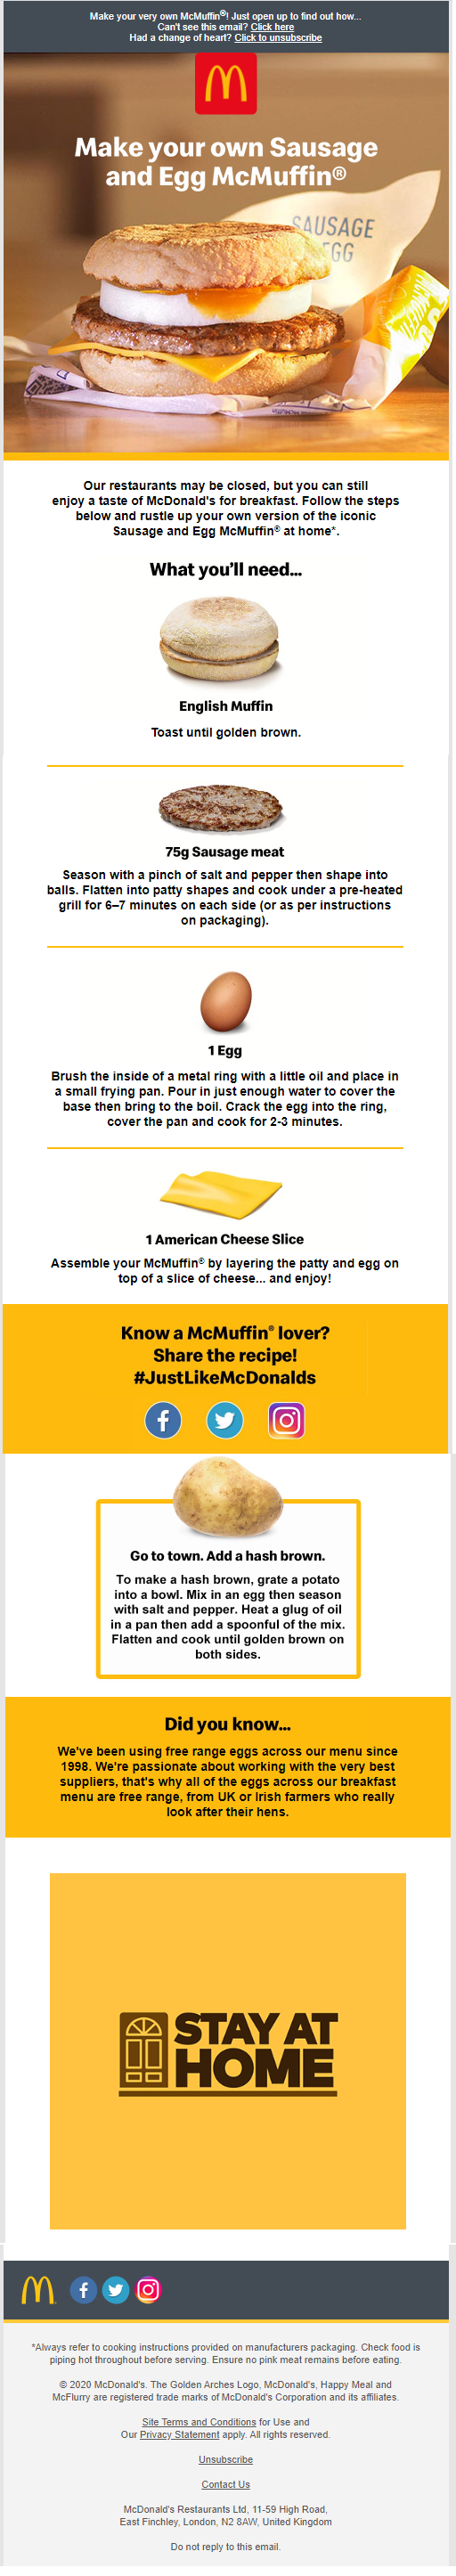 McDonald's McMuffin Email